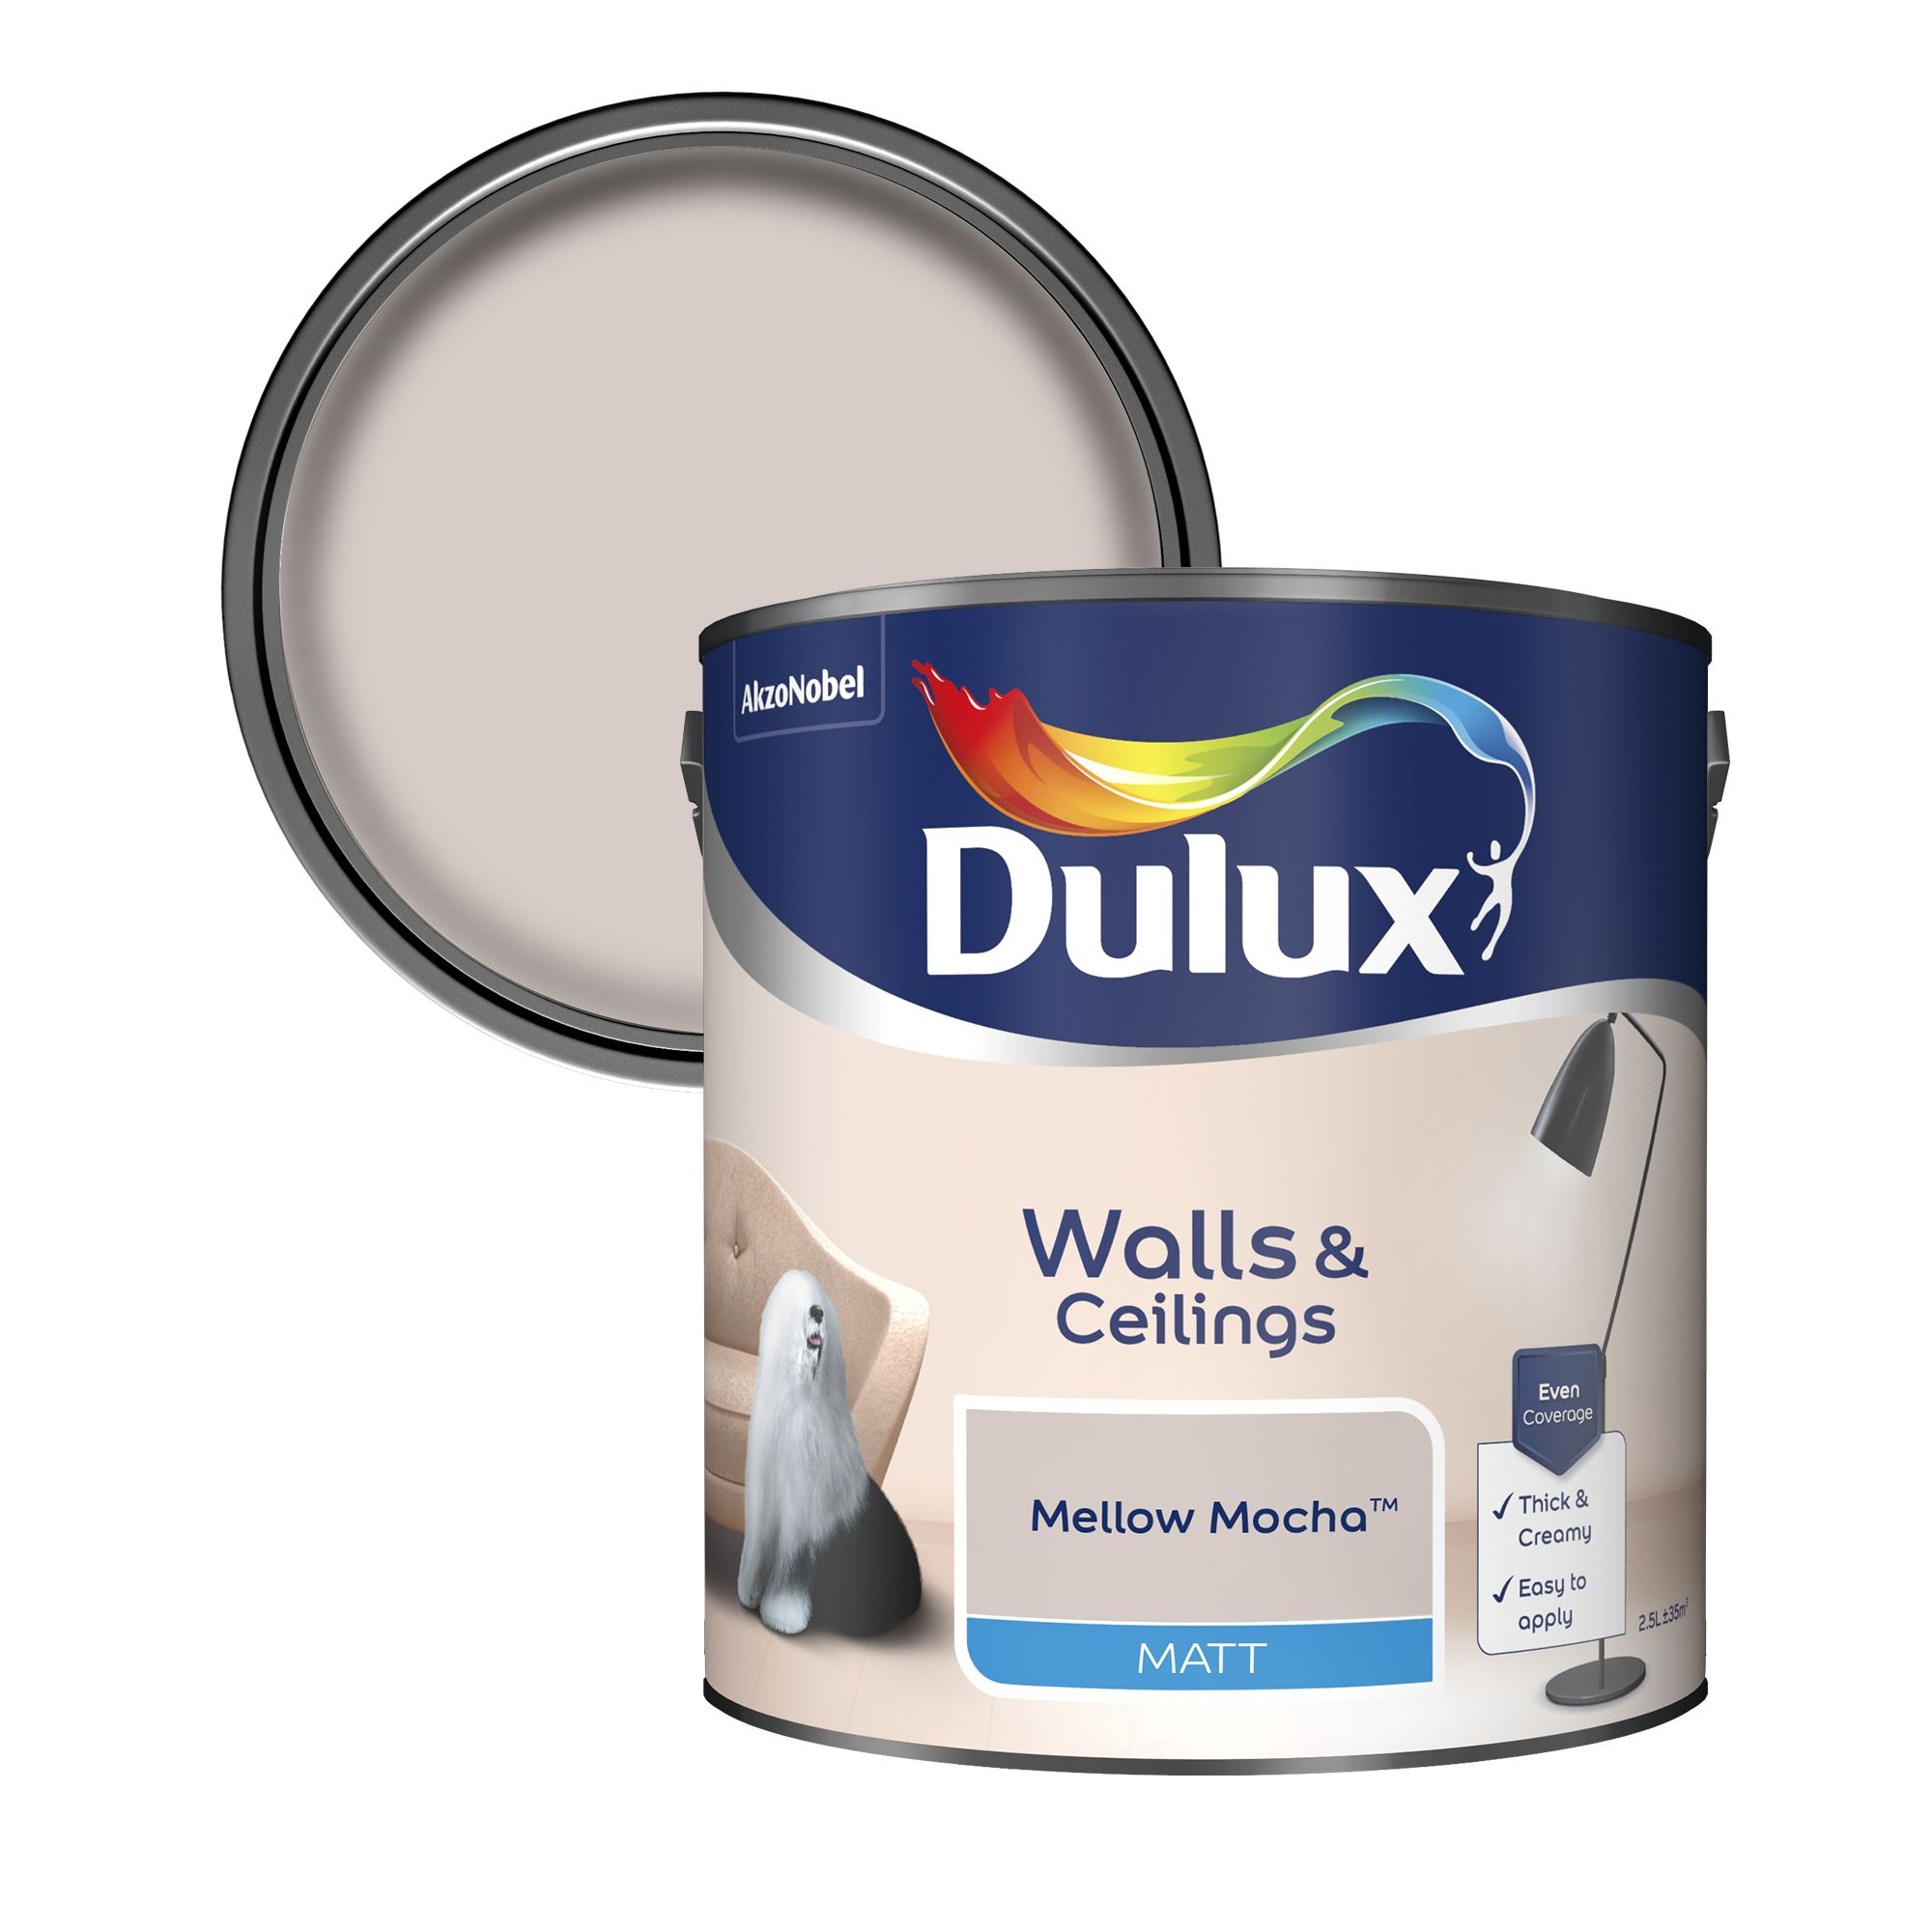 Dulux Neutrals Mellow Mocha Matt Emulsion Paint 2 5l Departments Diy At B Q,Different Types Of Purple Crystals